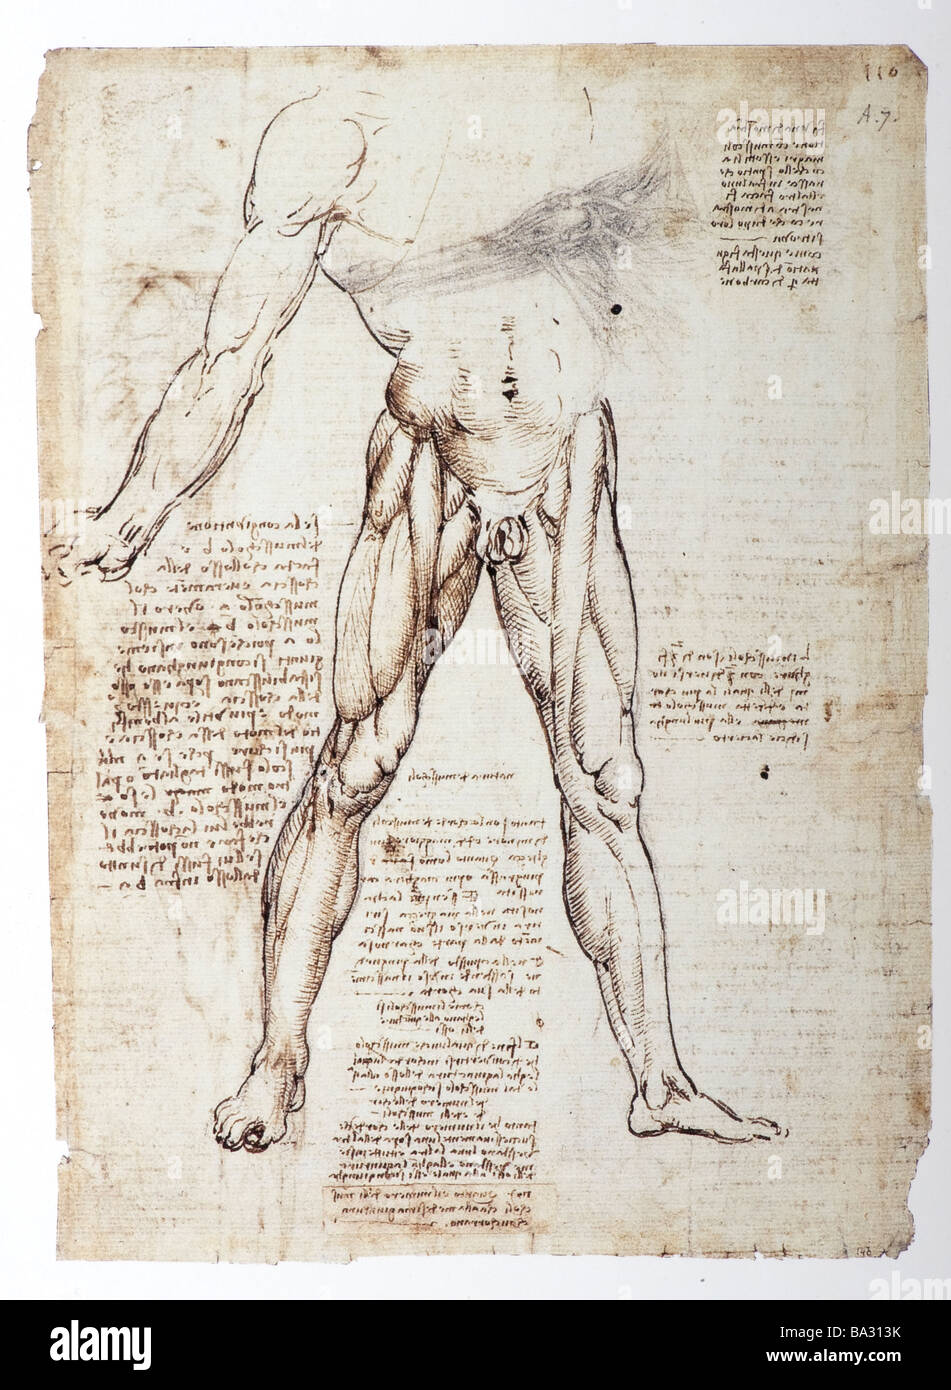 Anatomical Study of the Muscles of the Legs by Leonardo da Vinci ...